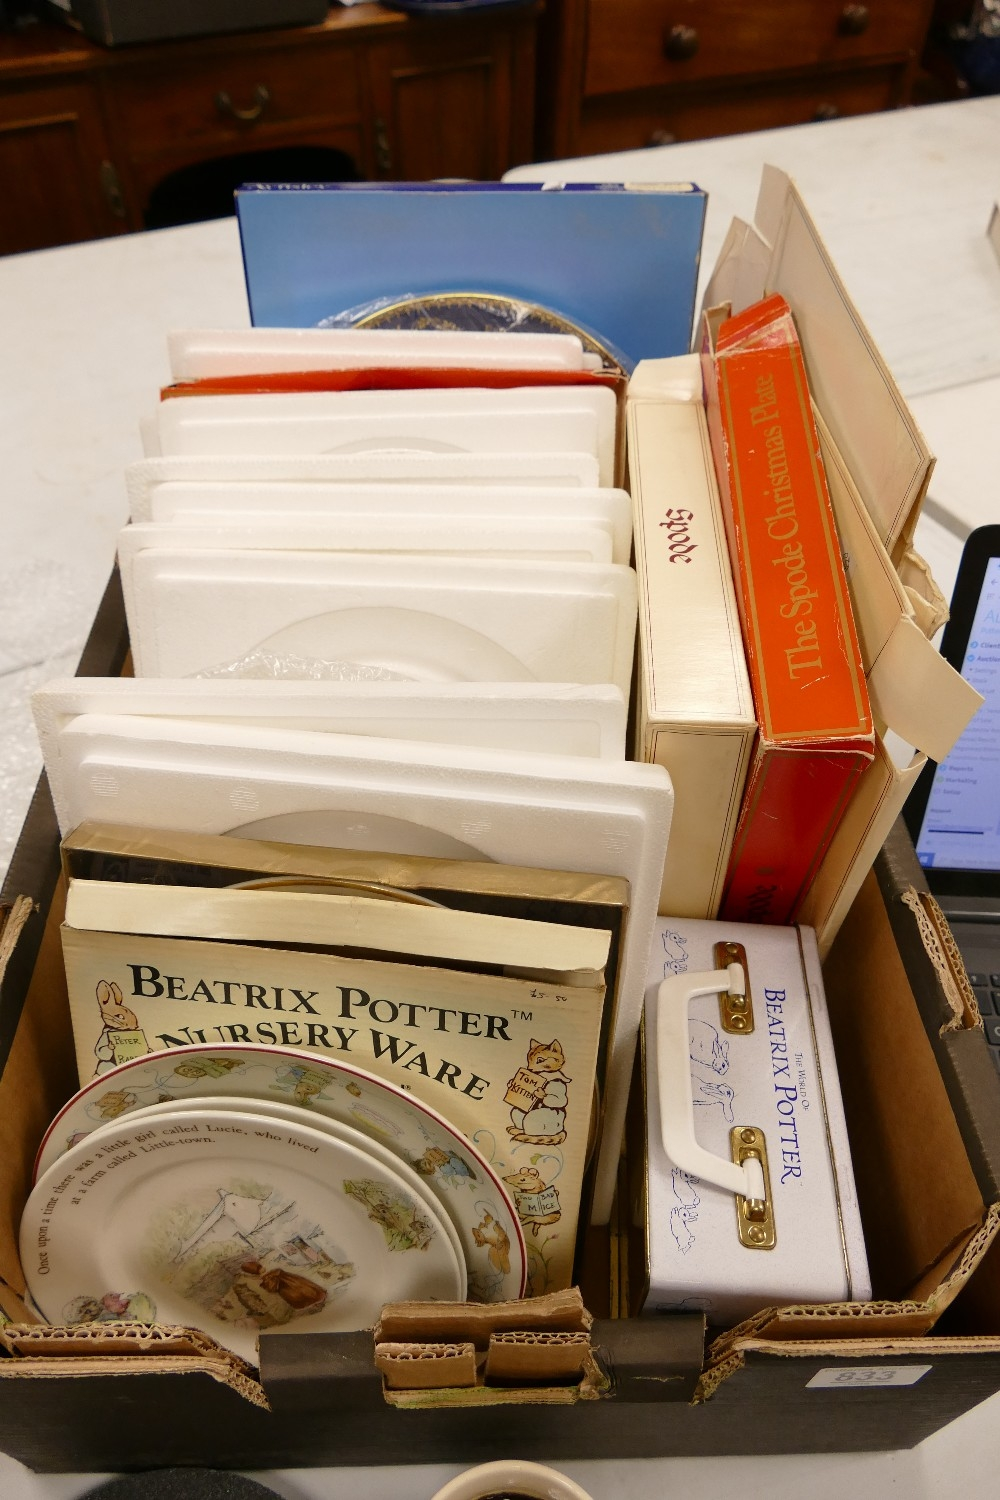 A collection of Aynsley, Wedgwood & Spode Decorative plates: Beatrix potter items noted, many boxed